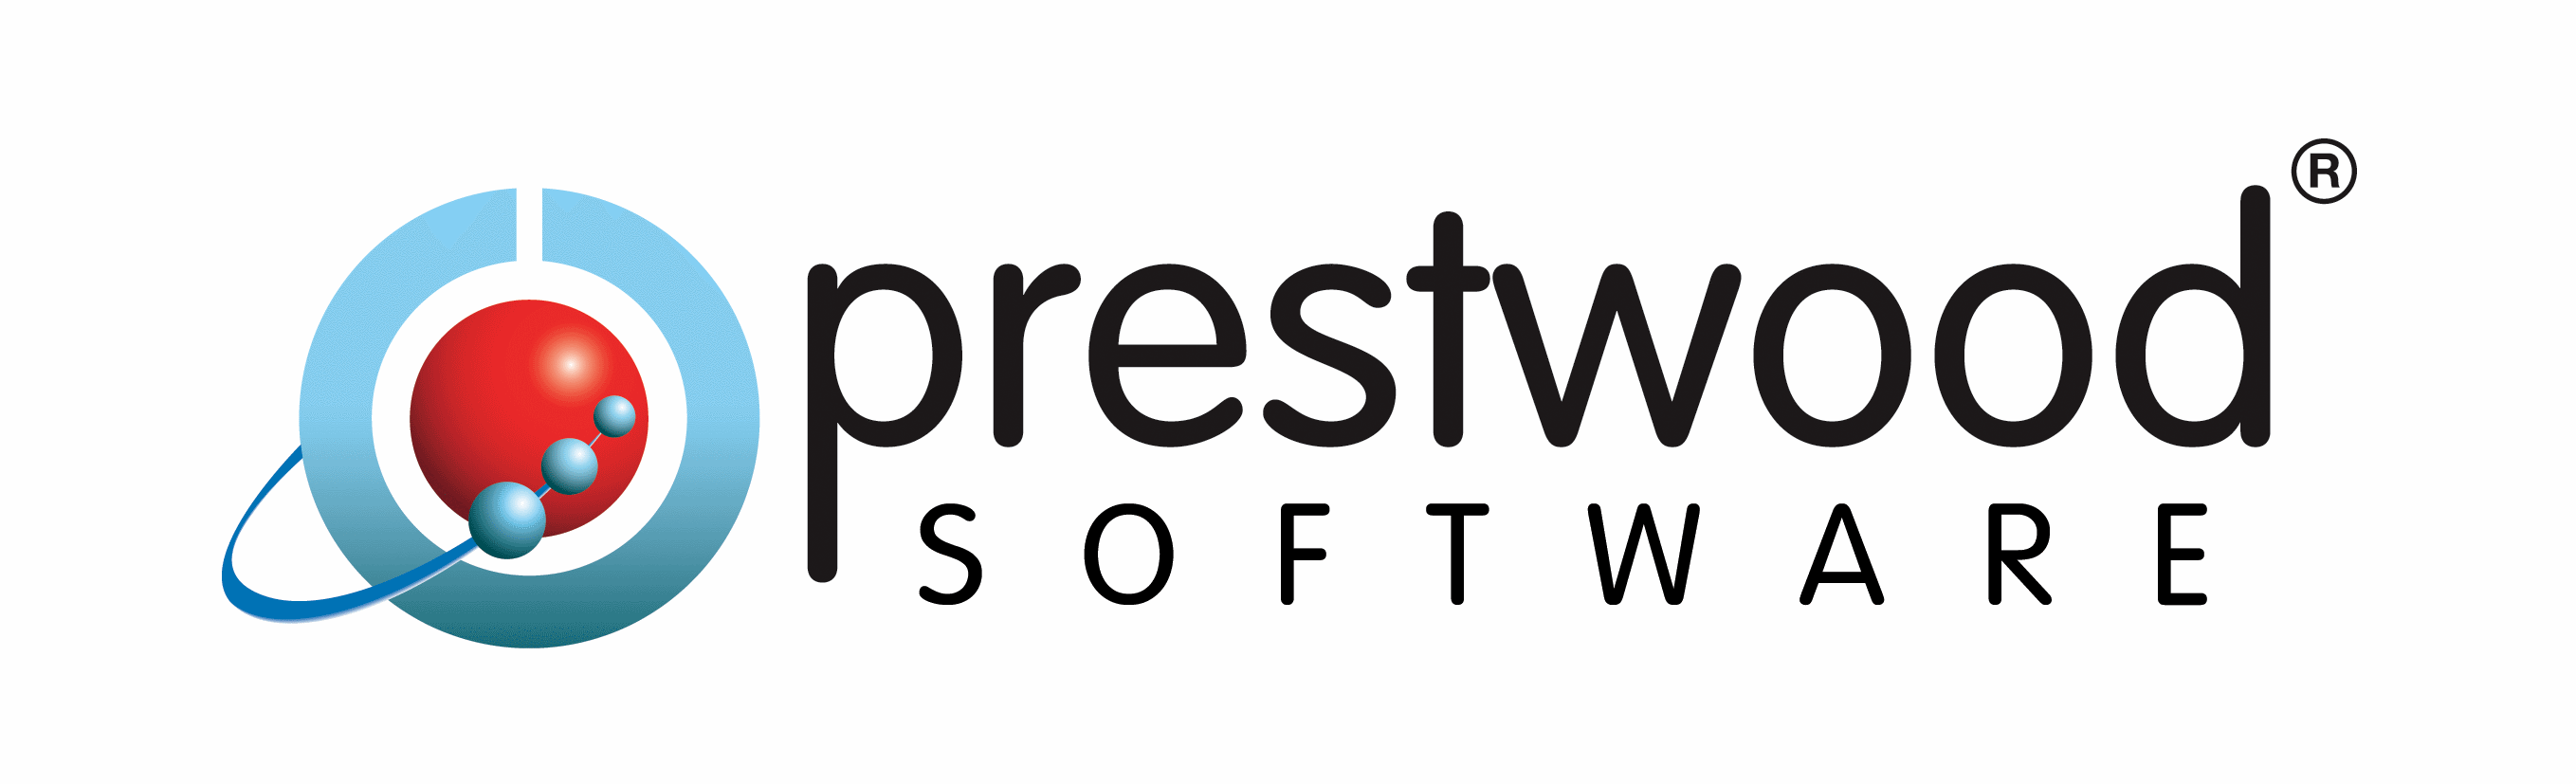 prestwood truth software cashflow mandatory db pension transfer cases